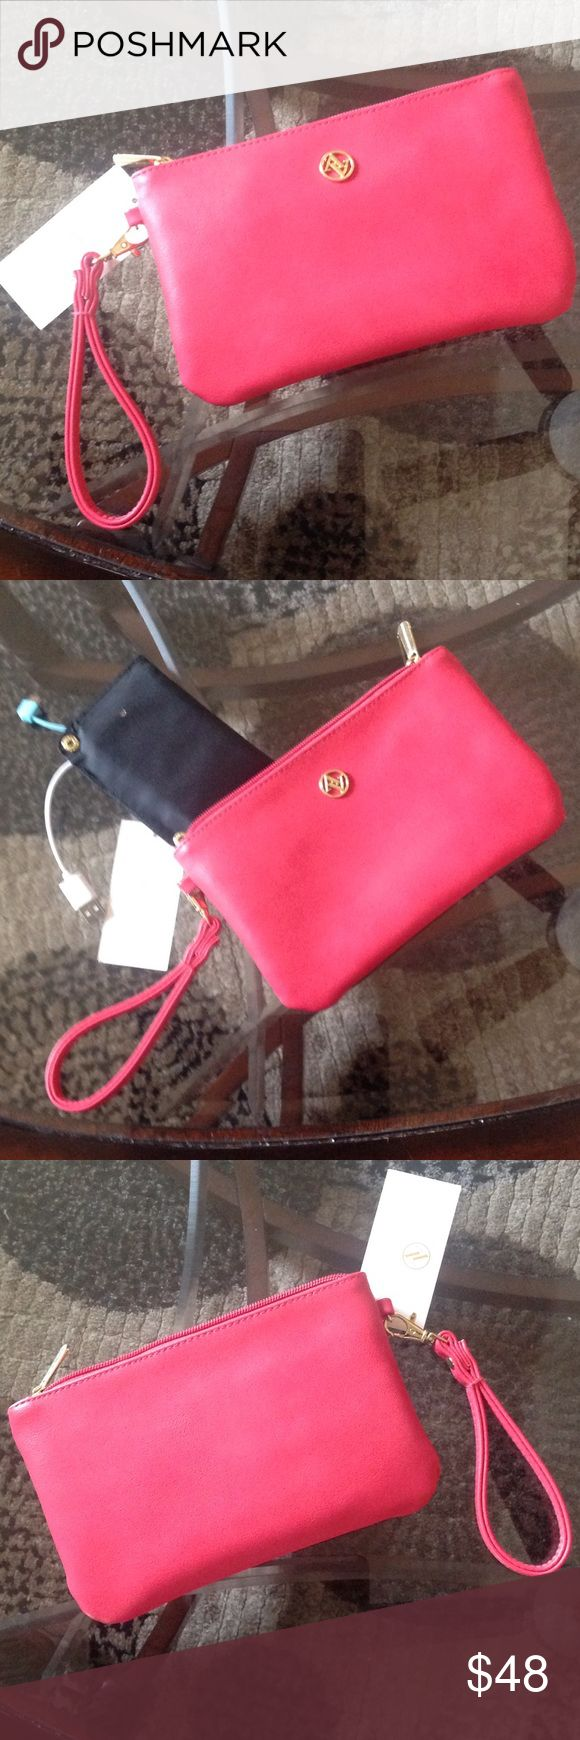 "NEW! ADRiENNE VITTADINI CHARGING WALLET/WRISTLET BRAND NEW! ADRiENNE VITTADINI ""CORAL"" CHARGING WALLET!! pockets for Cards, inside!! Approximate Measurements 8 1/4"" X 5 1/2""....EXCELLENT NEW CONDITION!! Adrienne Vittadini Bags Wallets"